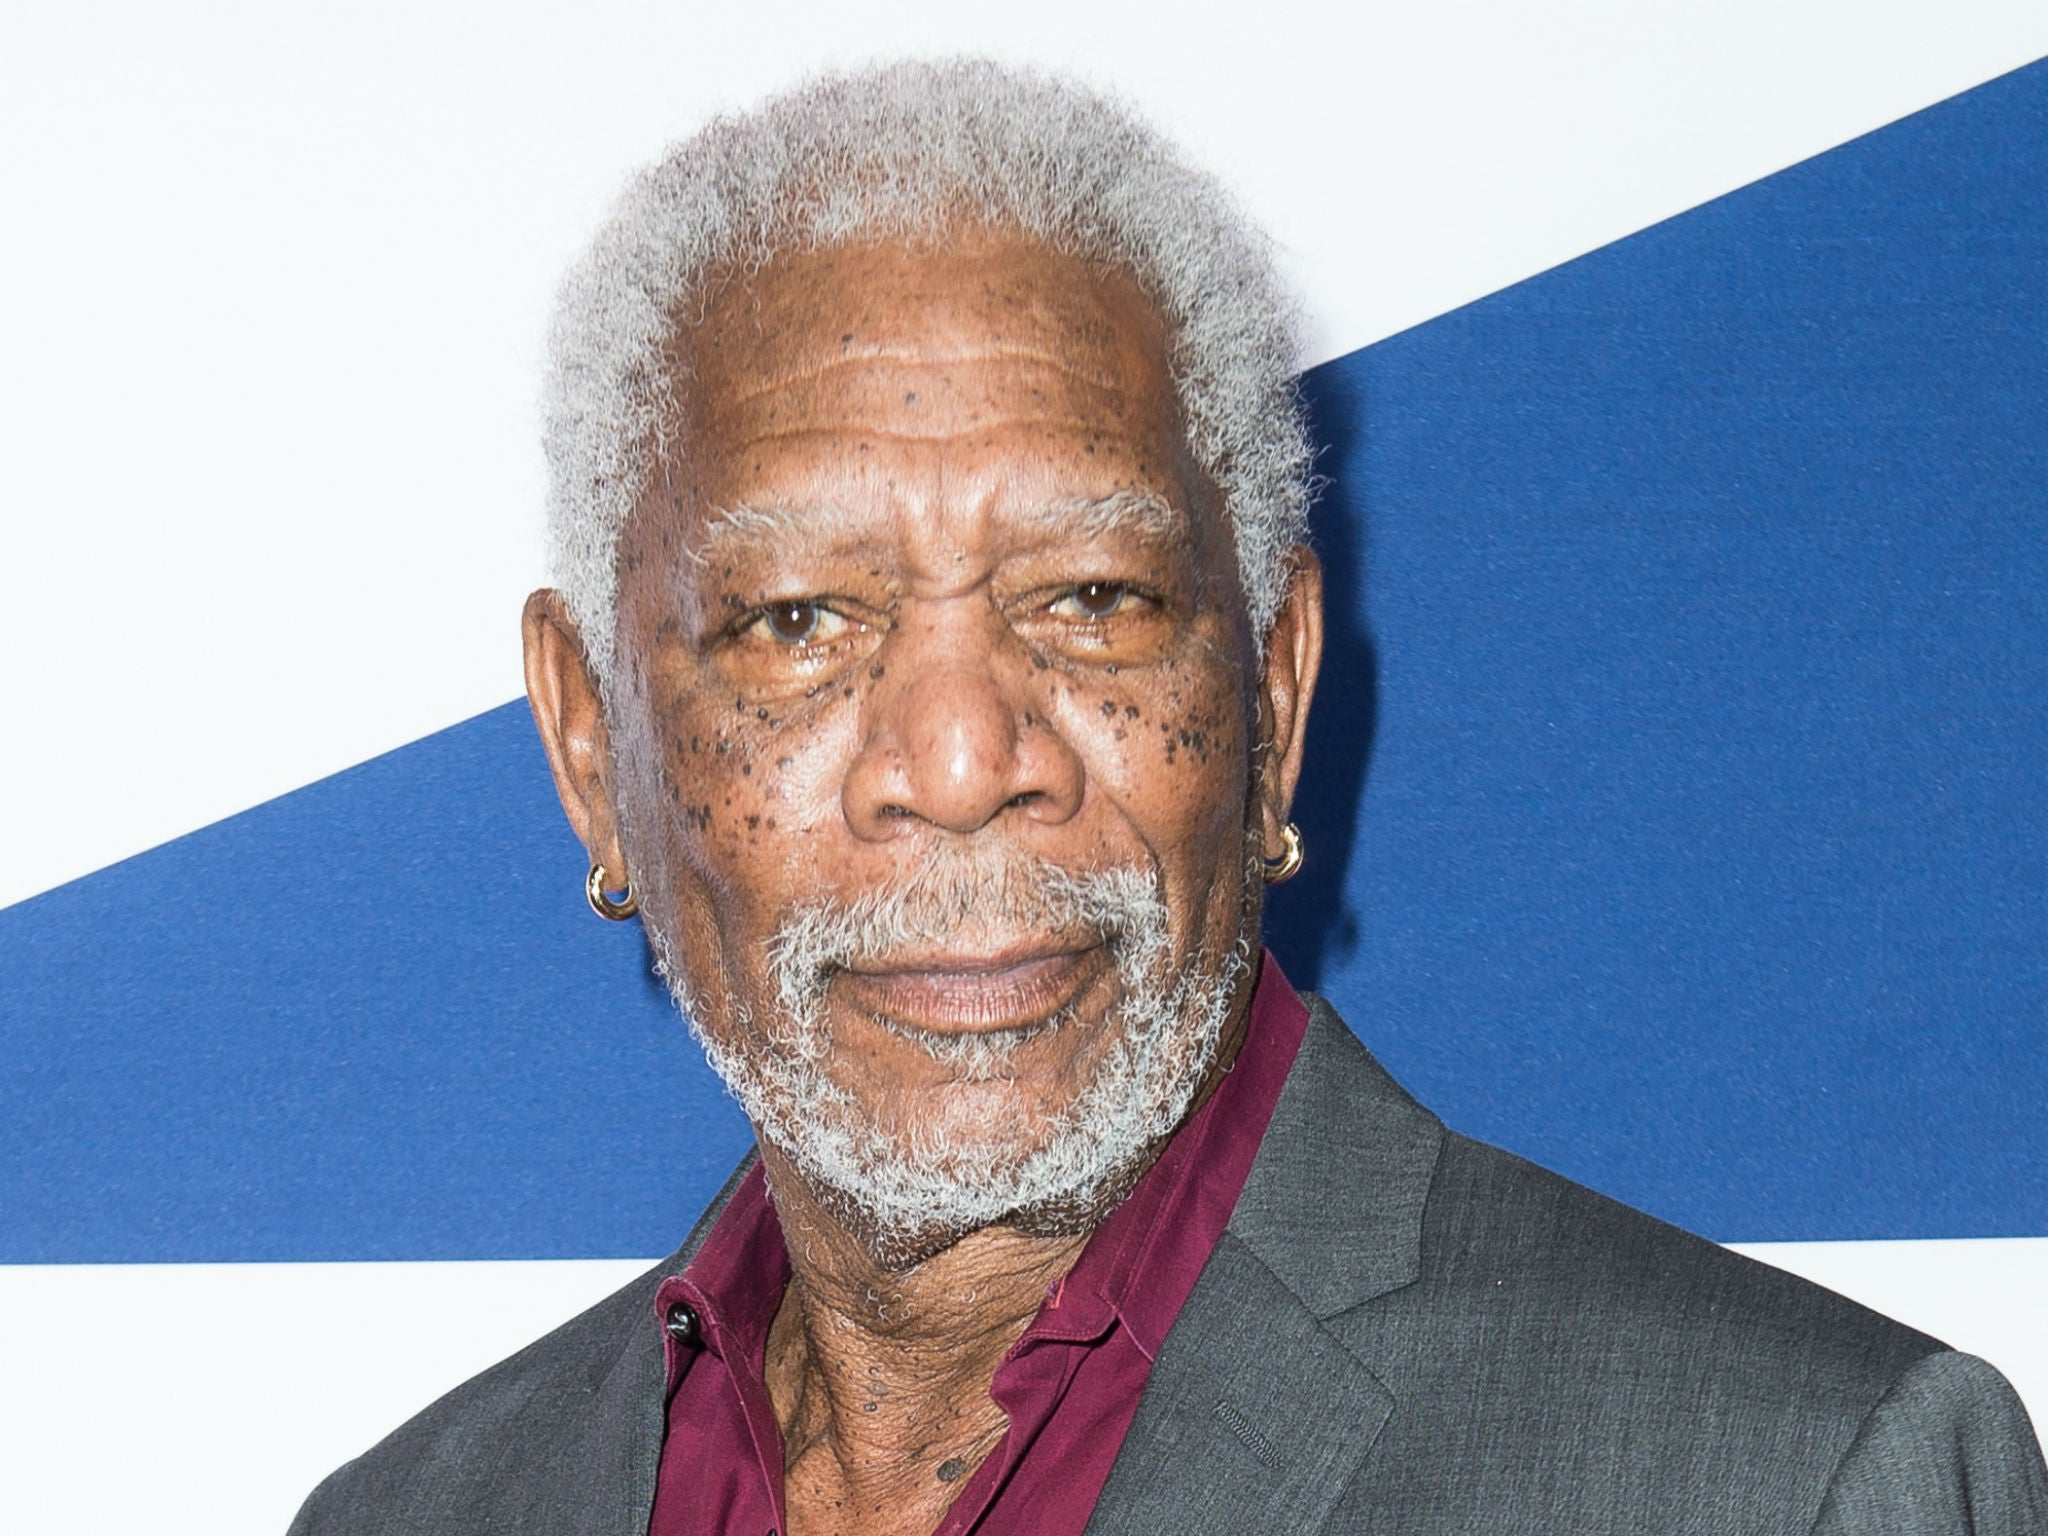 Morgan Freeman Explains How He Got His Iconic Voice The